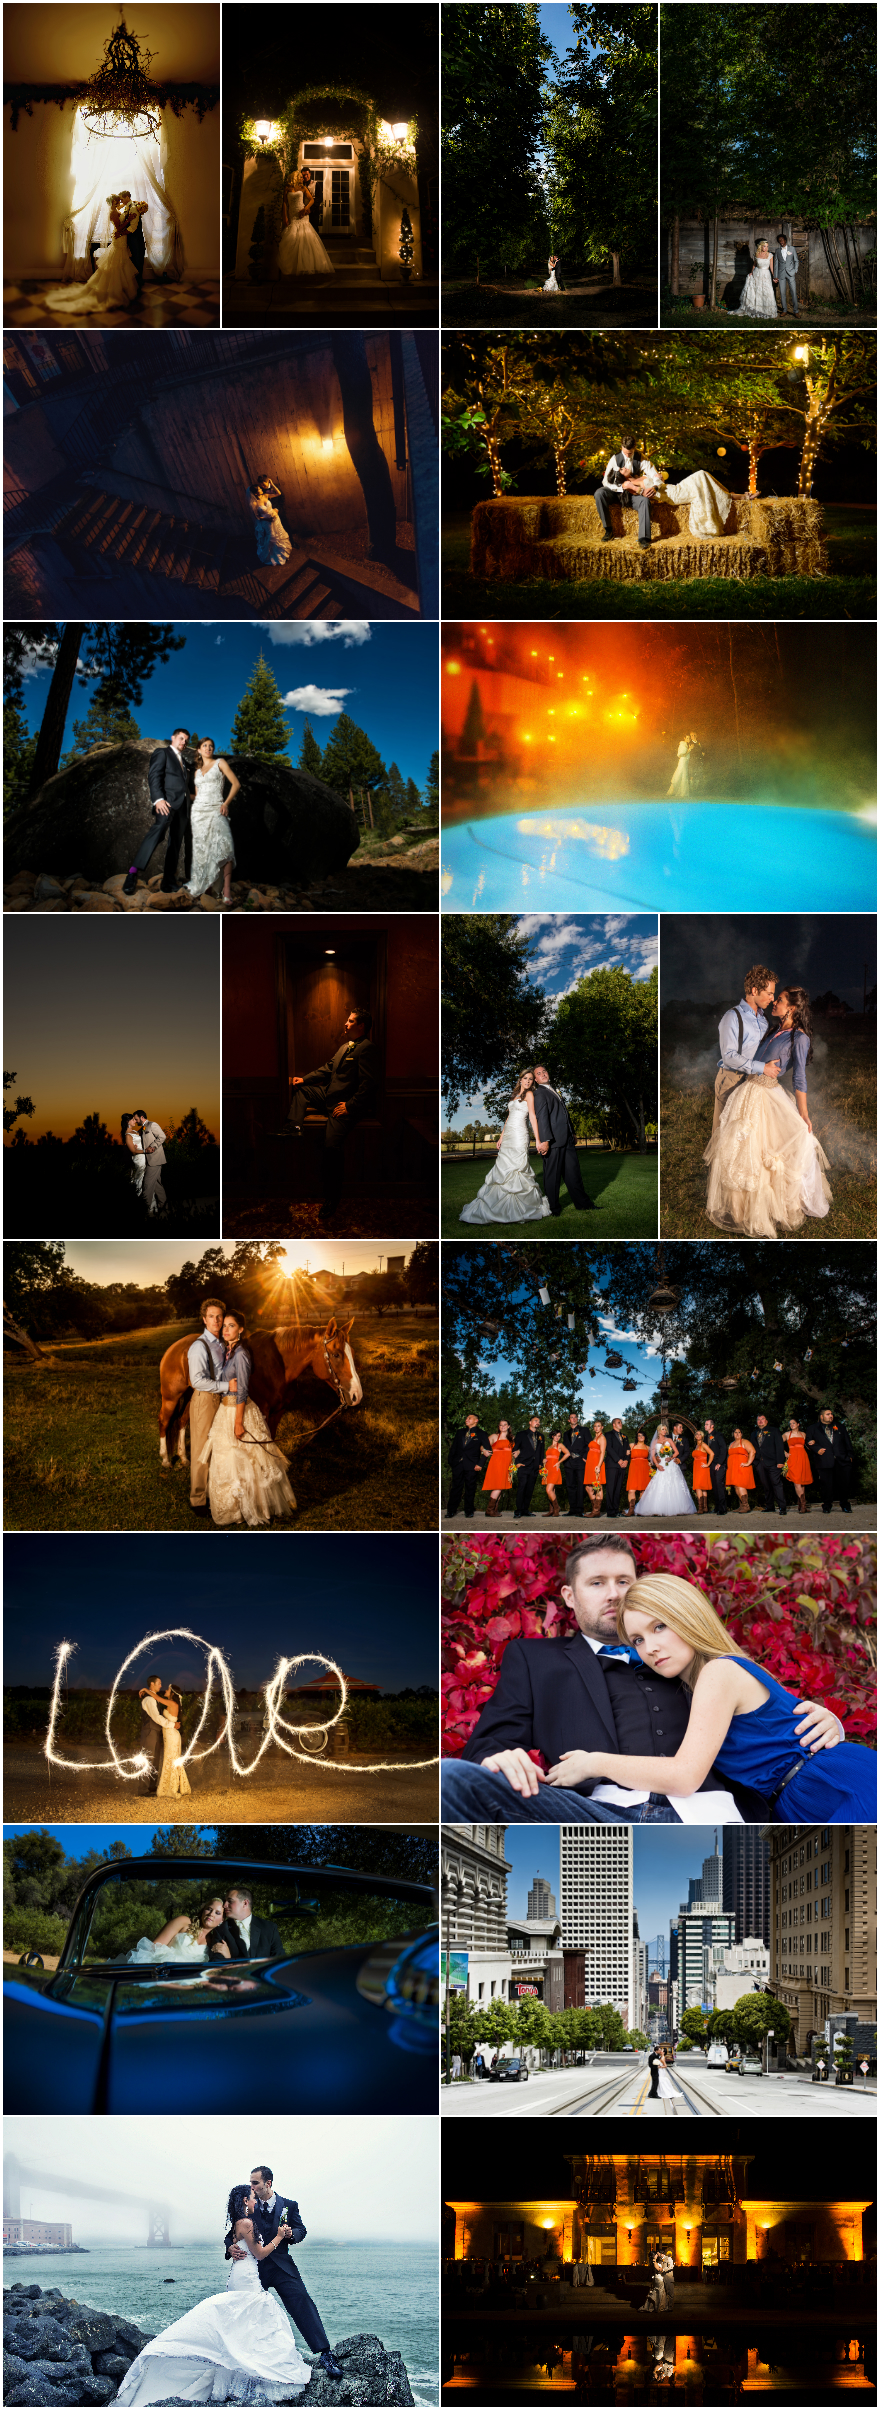 some of my favorite photos from the past wedding 2012 year